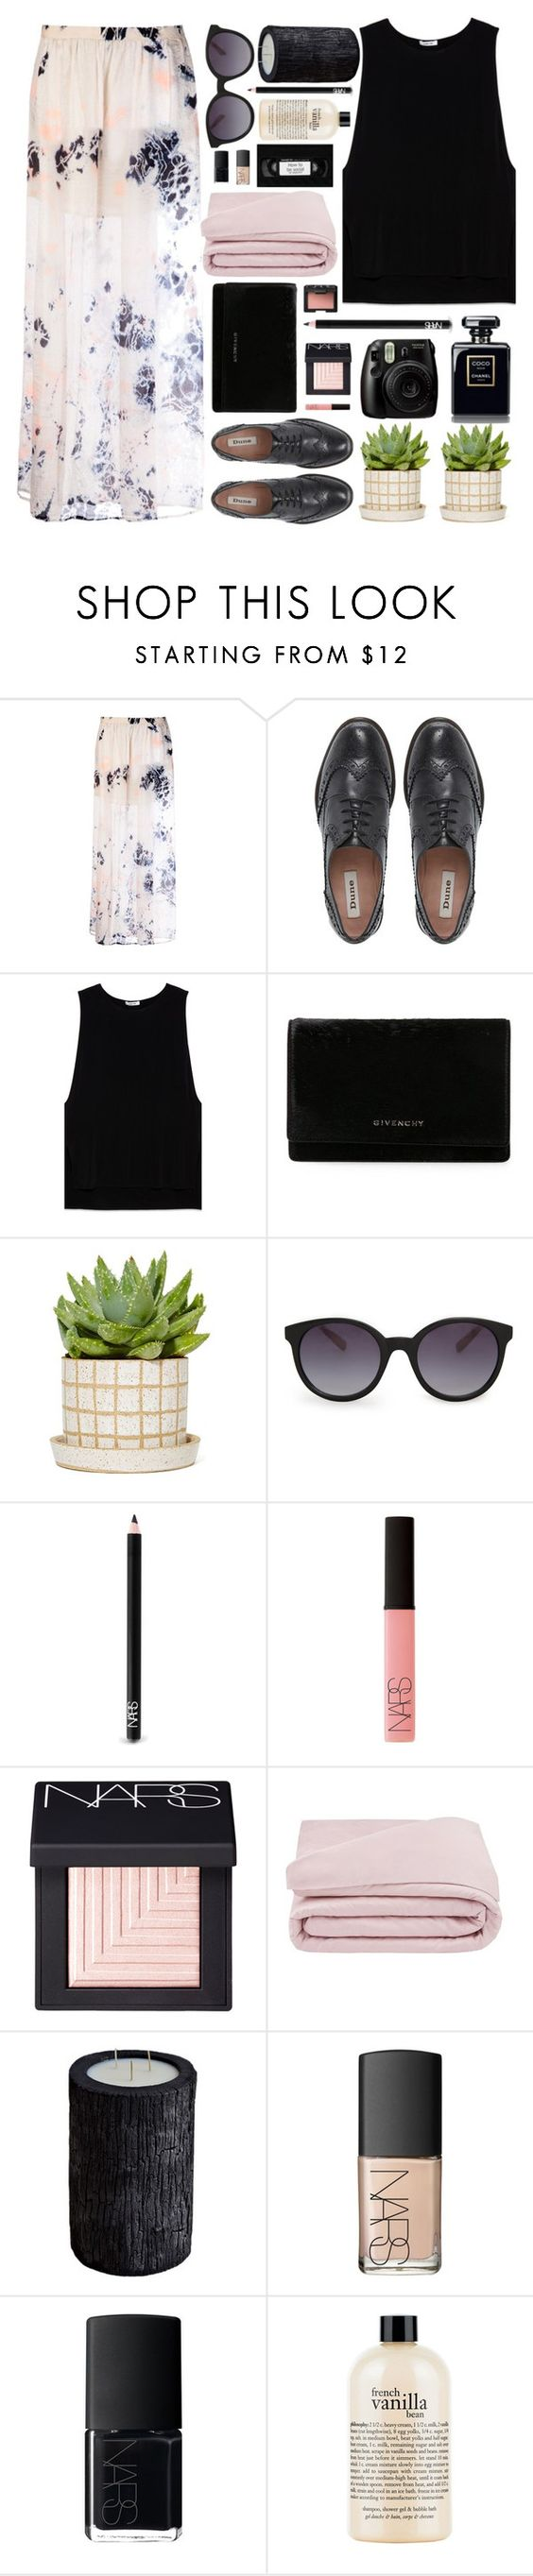 """""""maxiskirt."""" by untake-n ❤ liked on Polyvore featuring Raquel Allegra, Dune, Helmut Lang, Givenchy, MANGO, NARS Cosmetics, Frette, Vascolari and philosophy"""